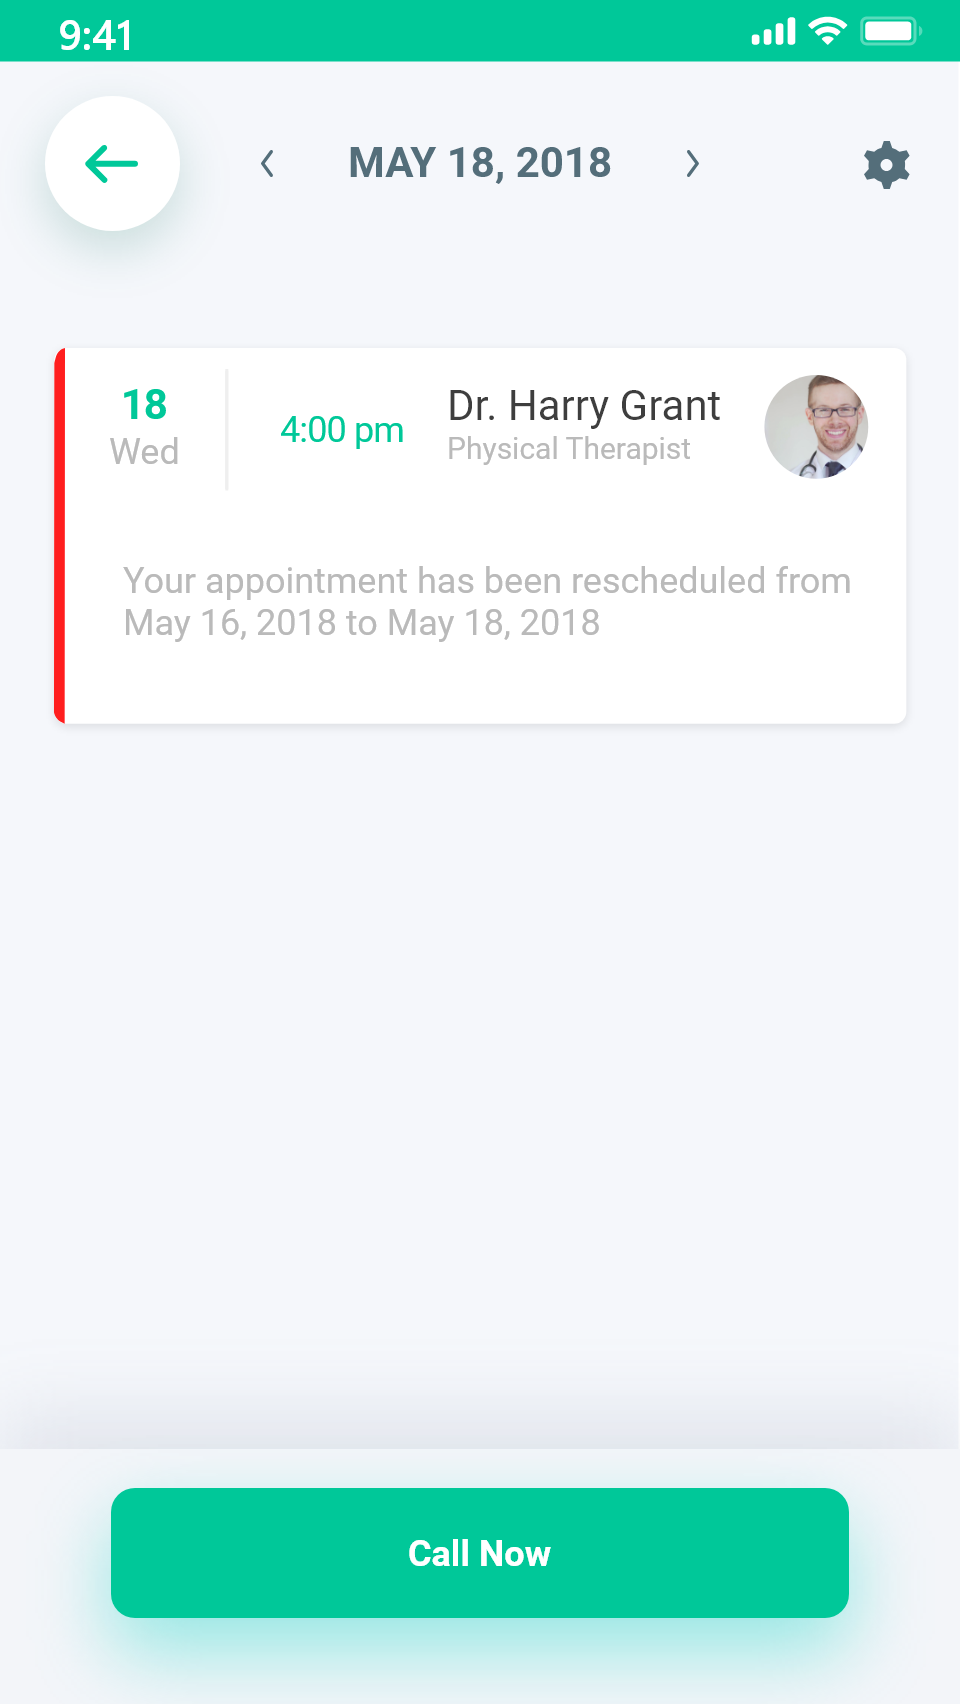 Appointment details